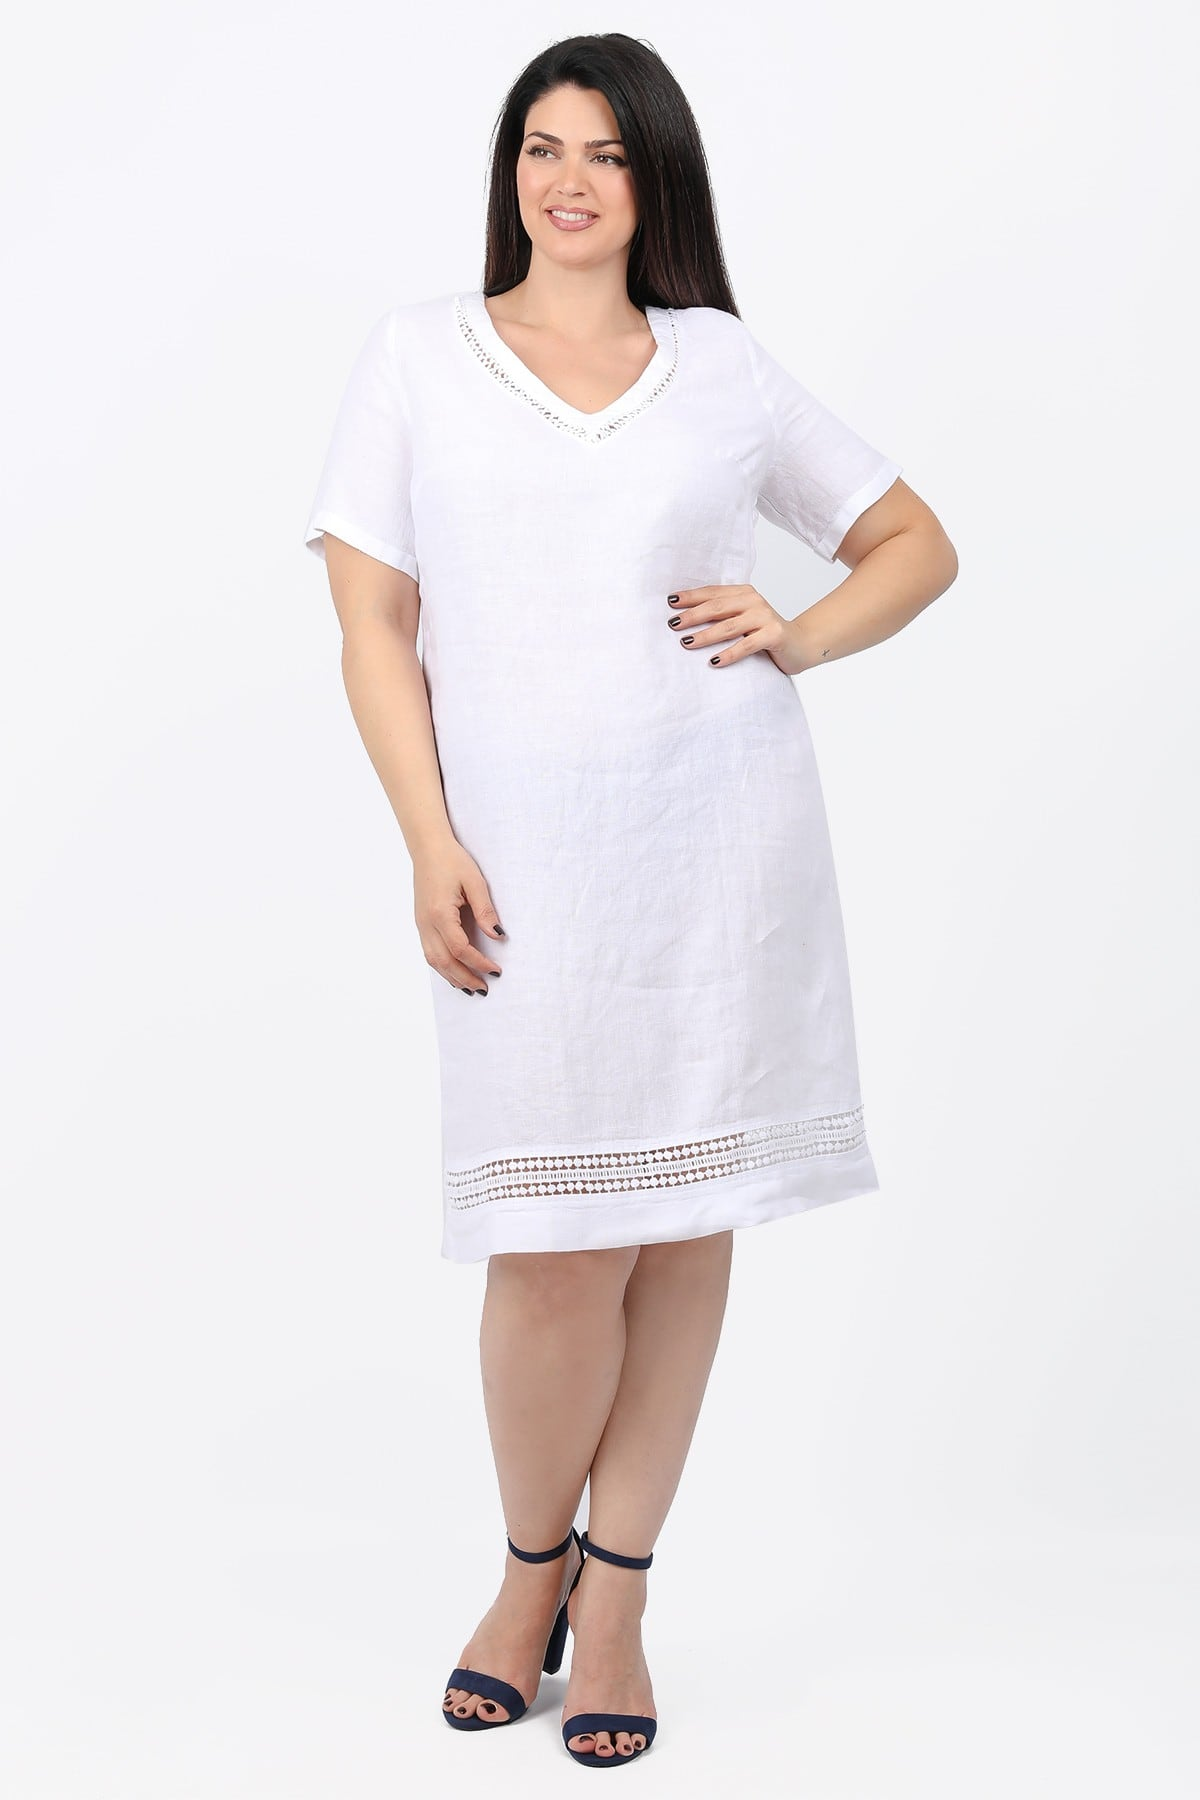 Linen dress with details